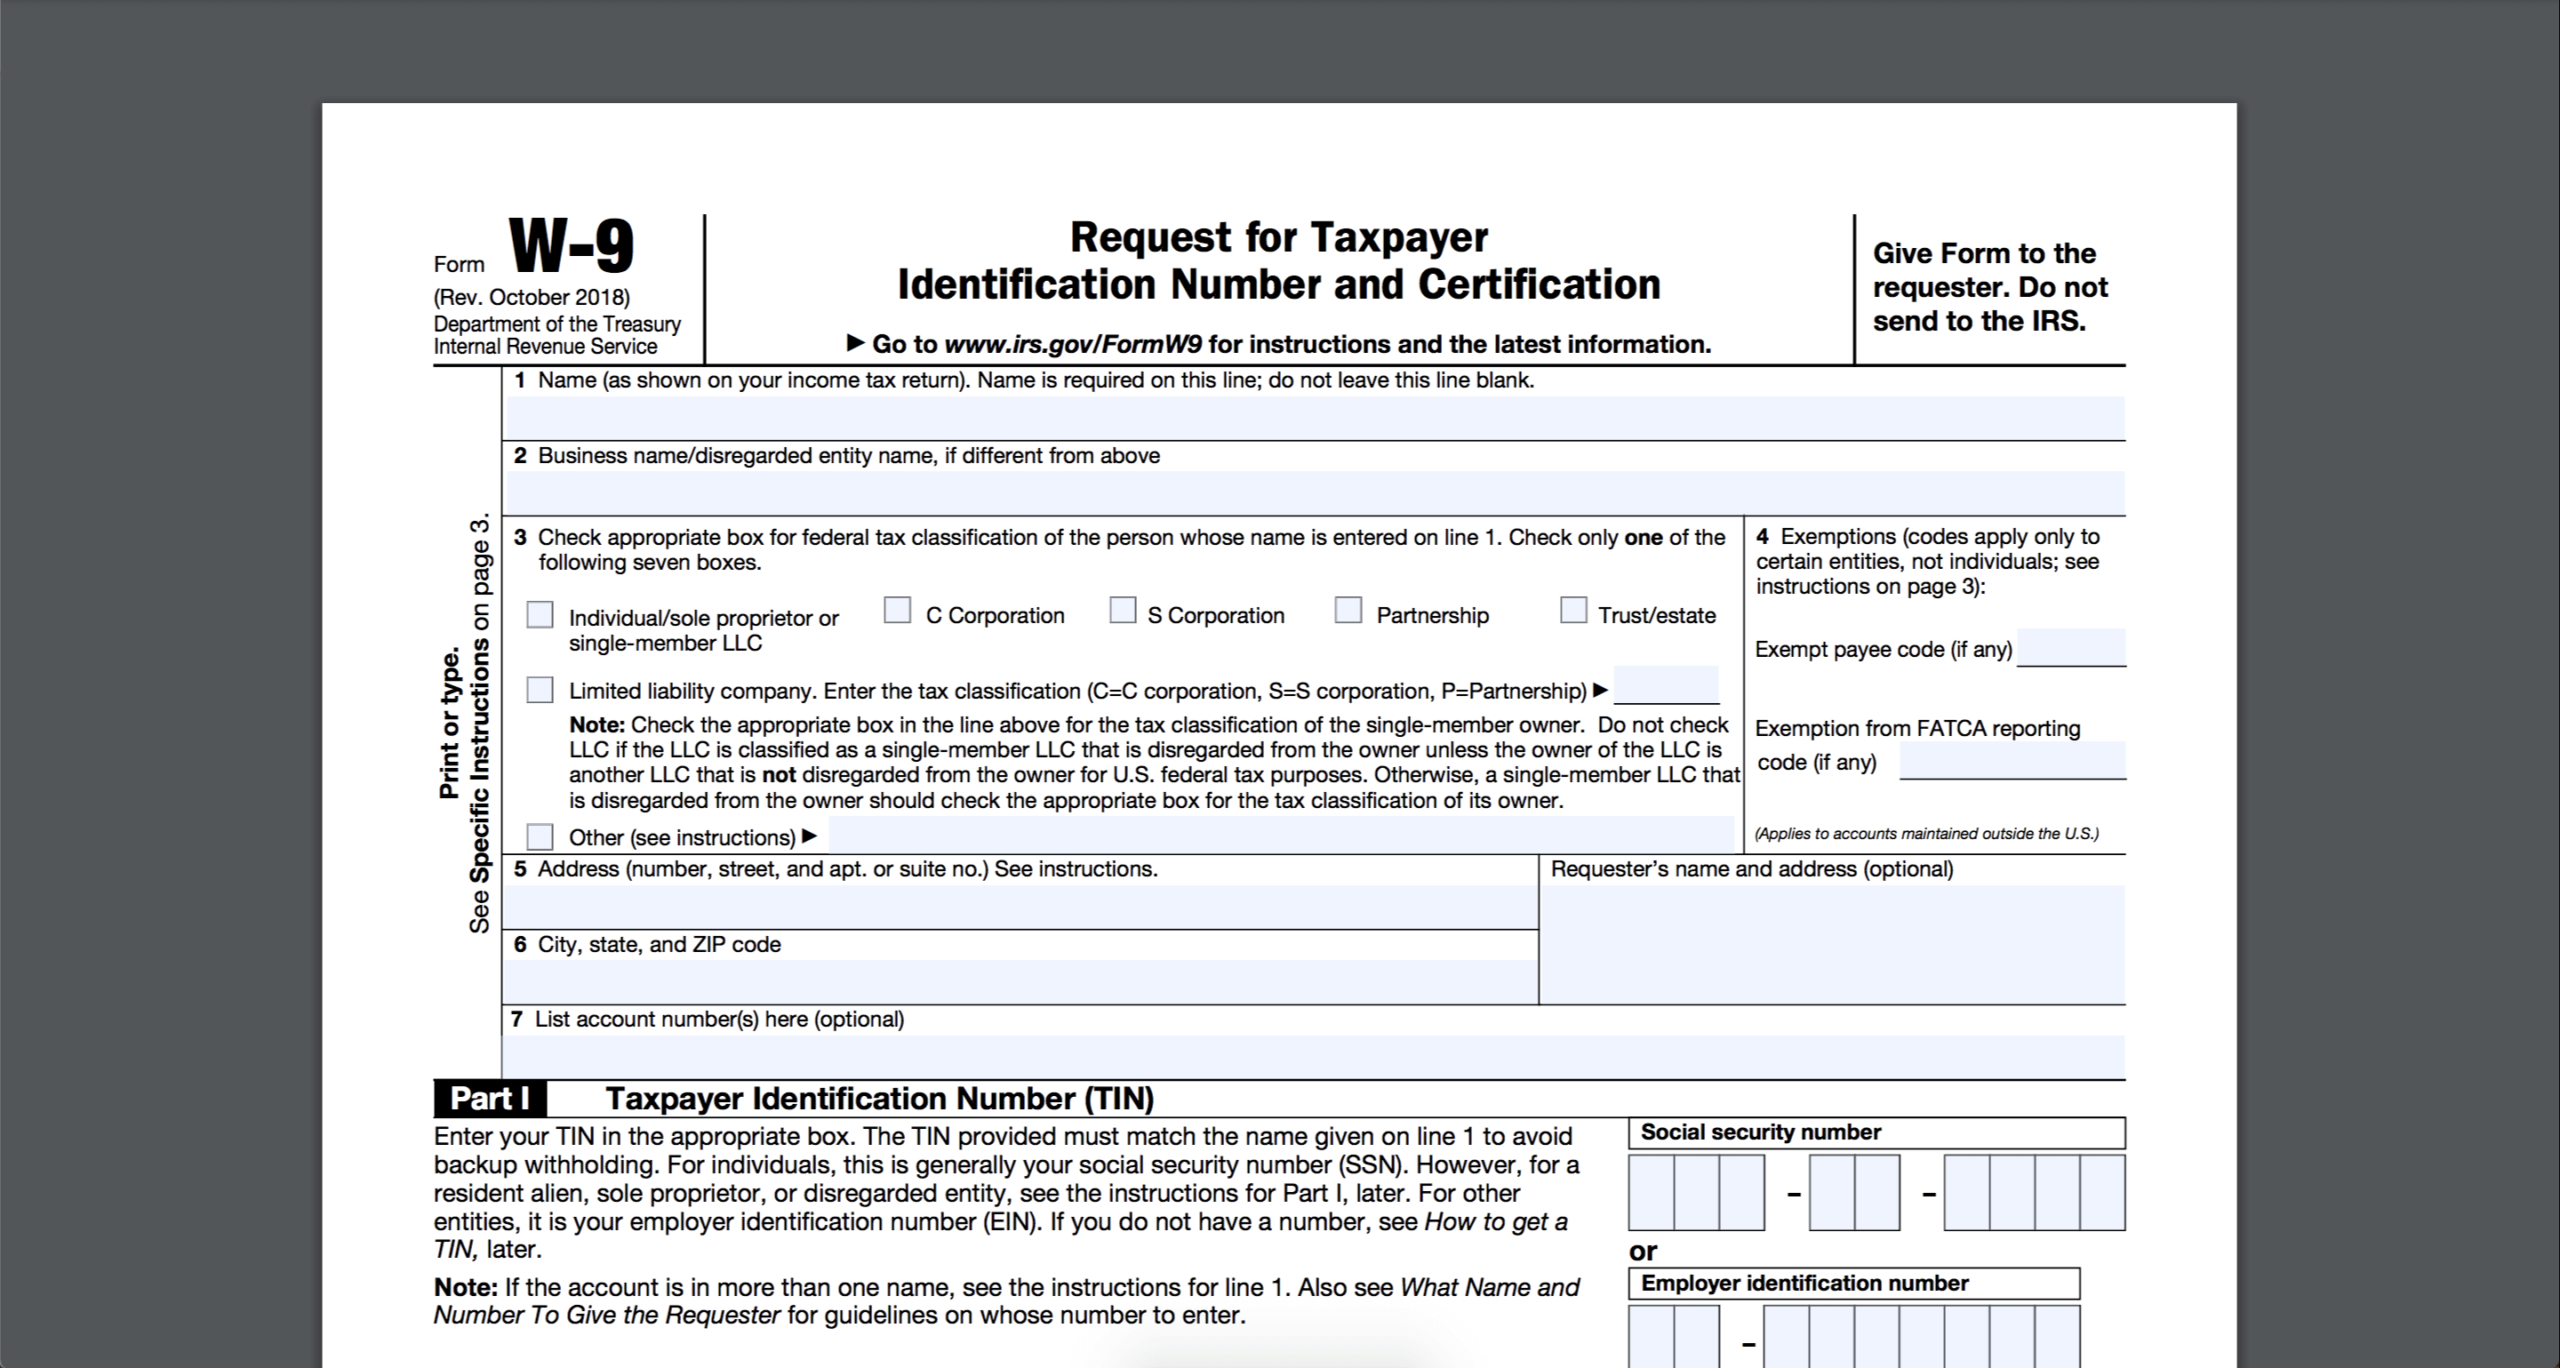 How To Fill Out And Sign Your W-9 Form Online in Printable W-9 Form Blank